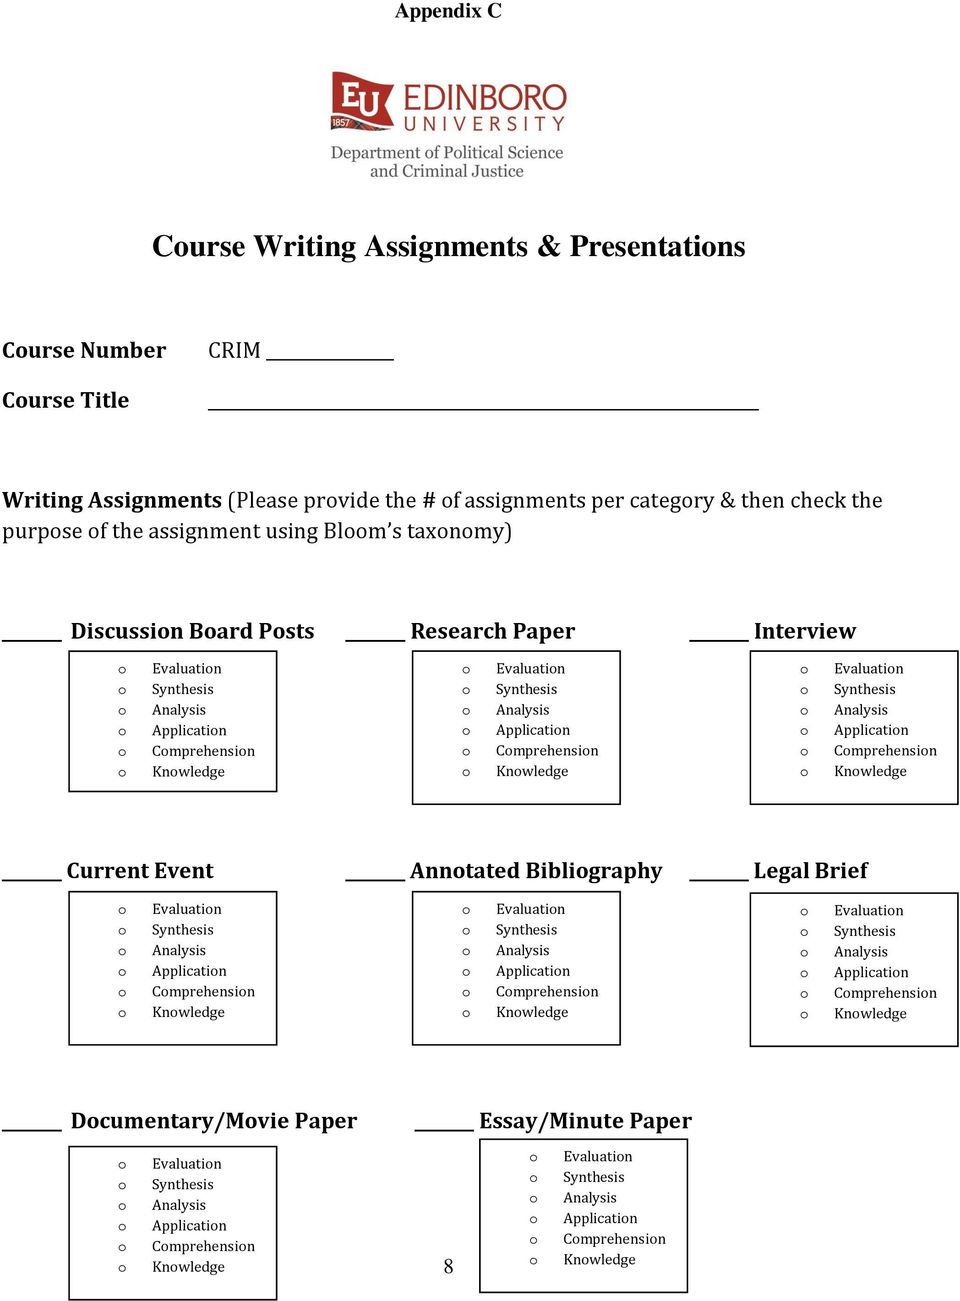 Knwledge Evaluatin Applicatin Cmprehensin Knwledge Current Event Anntated Bibligraphy Legal Brief Evaluatin Applicatin Cmprehensin Knwledge Evaluatin Applicatin